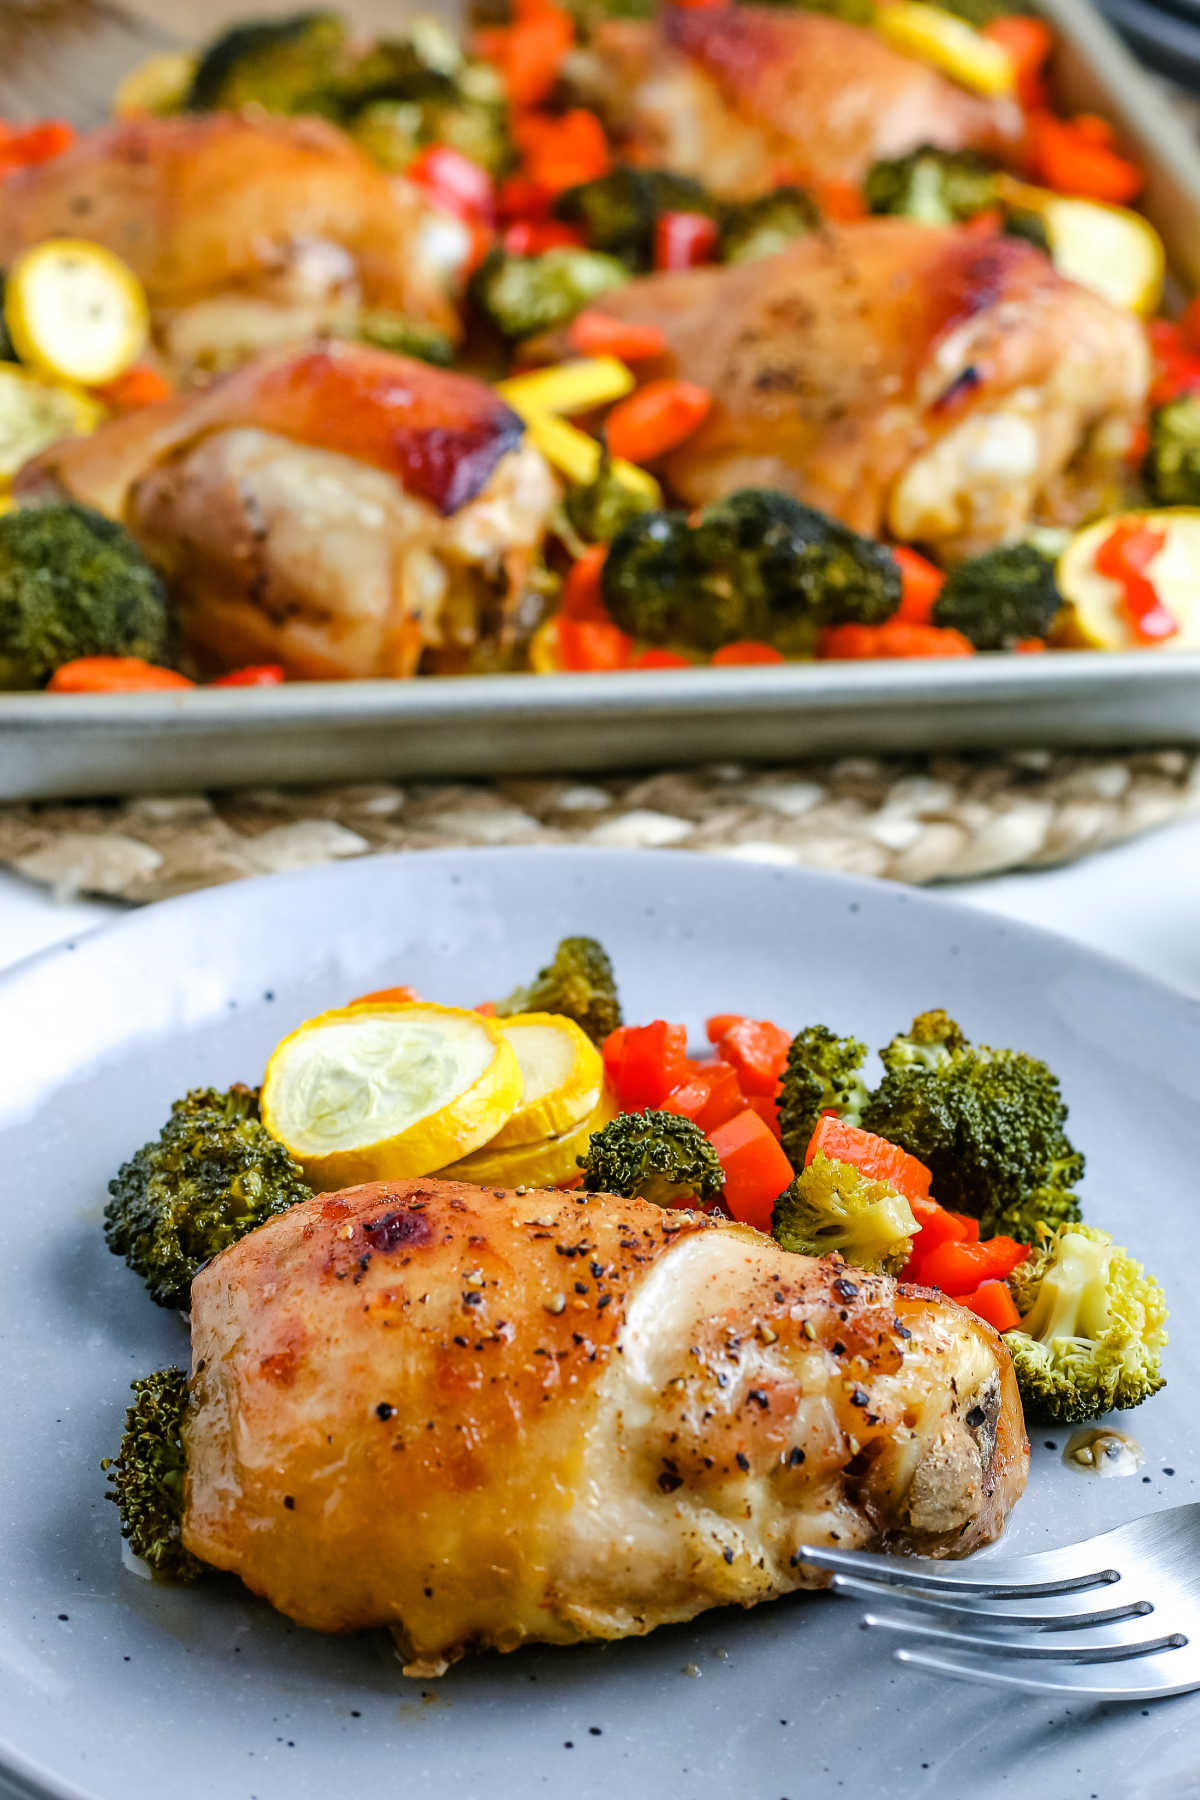 A chicken thigh and vegetables on a grey plate.